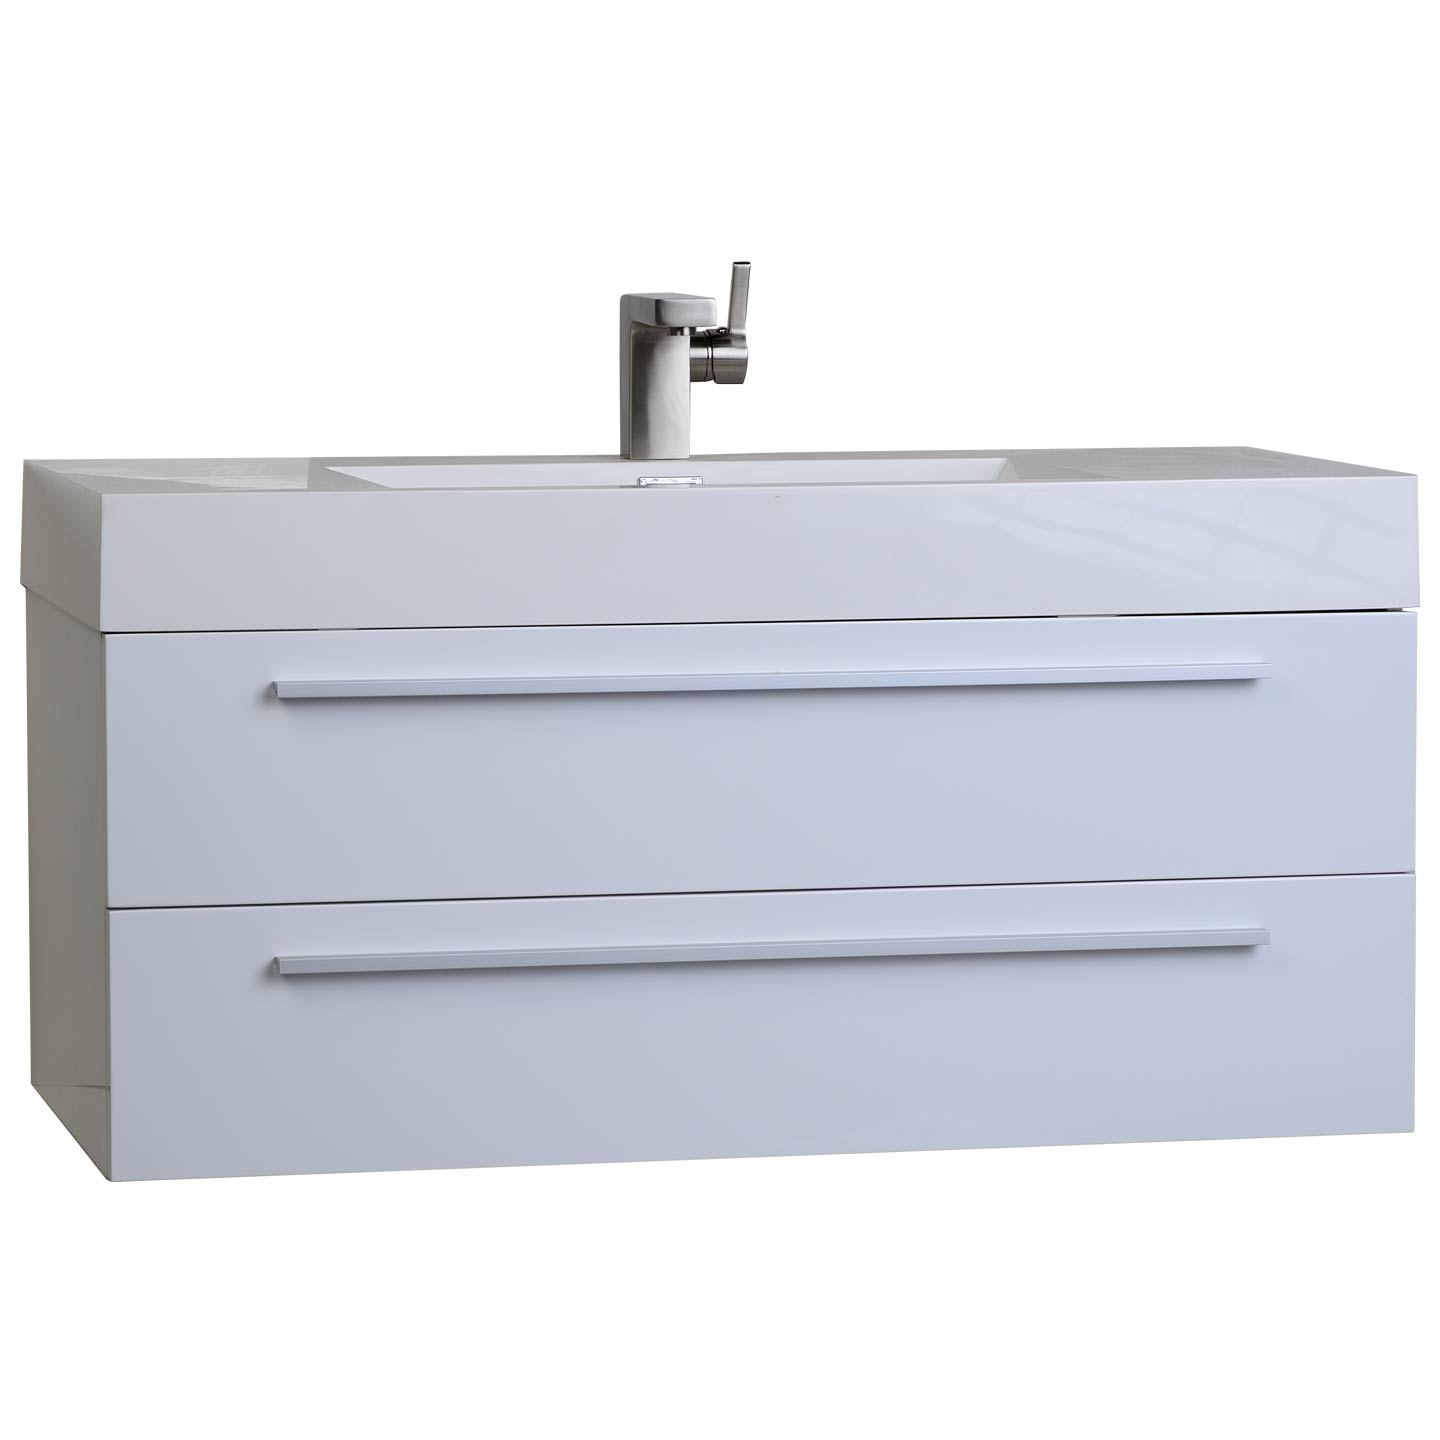 in wallmount modern bathroom vanity in high gloss white tn  -  wallmount modern bathroom vanity in high gloss white tnmhgw